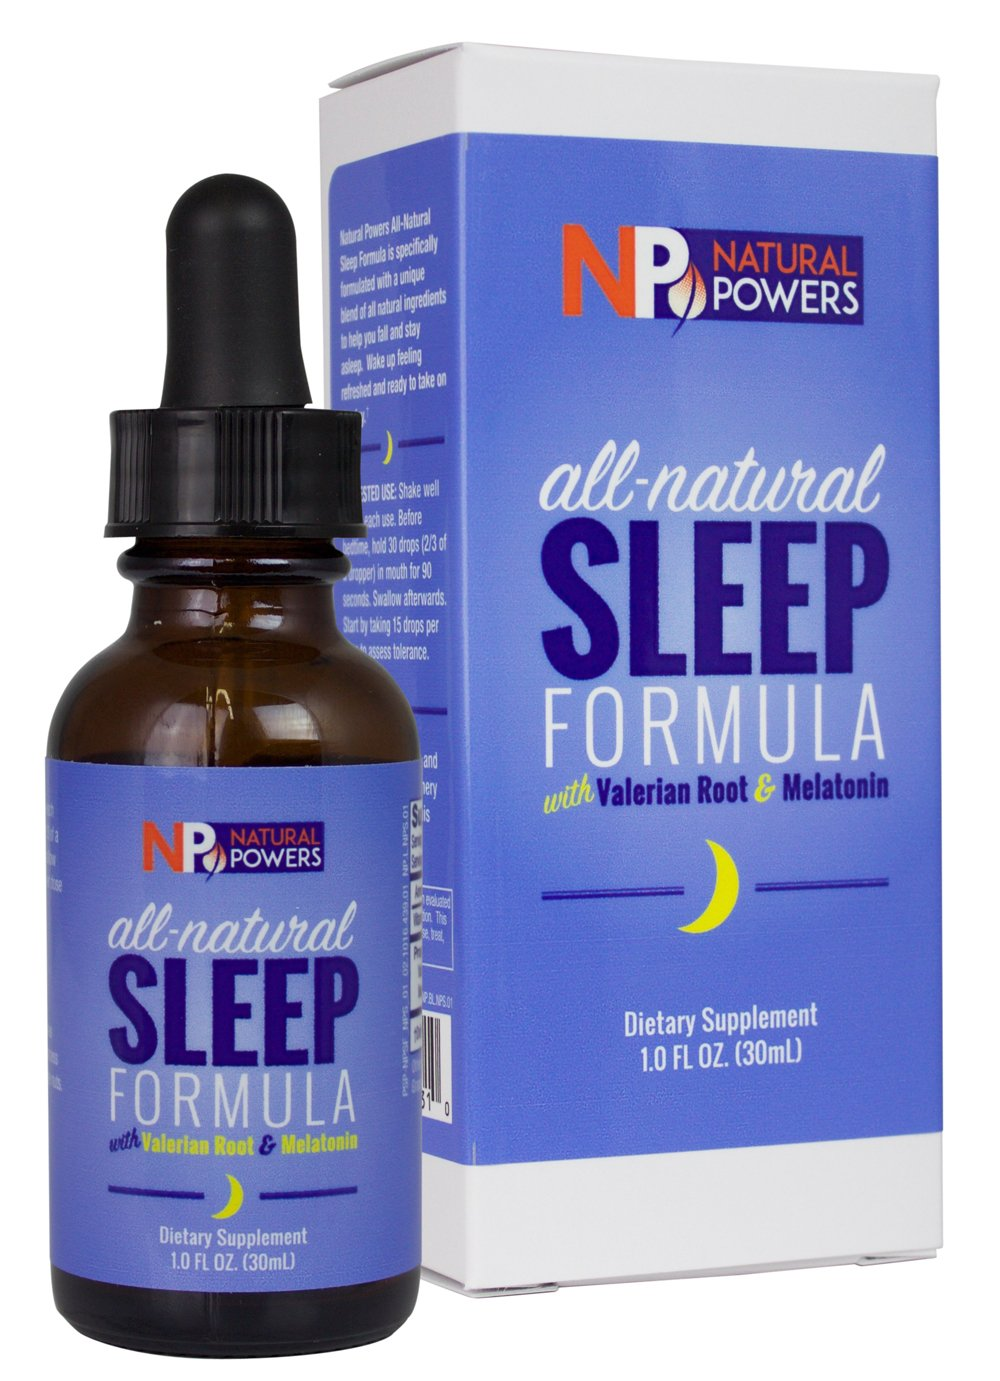 Natural Powers All-Natural Sleep Formula with Valerian Root & Melatonin - Liquid for Fast Absorption - 1 FL OZ. (30mL)